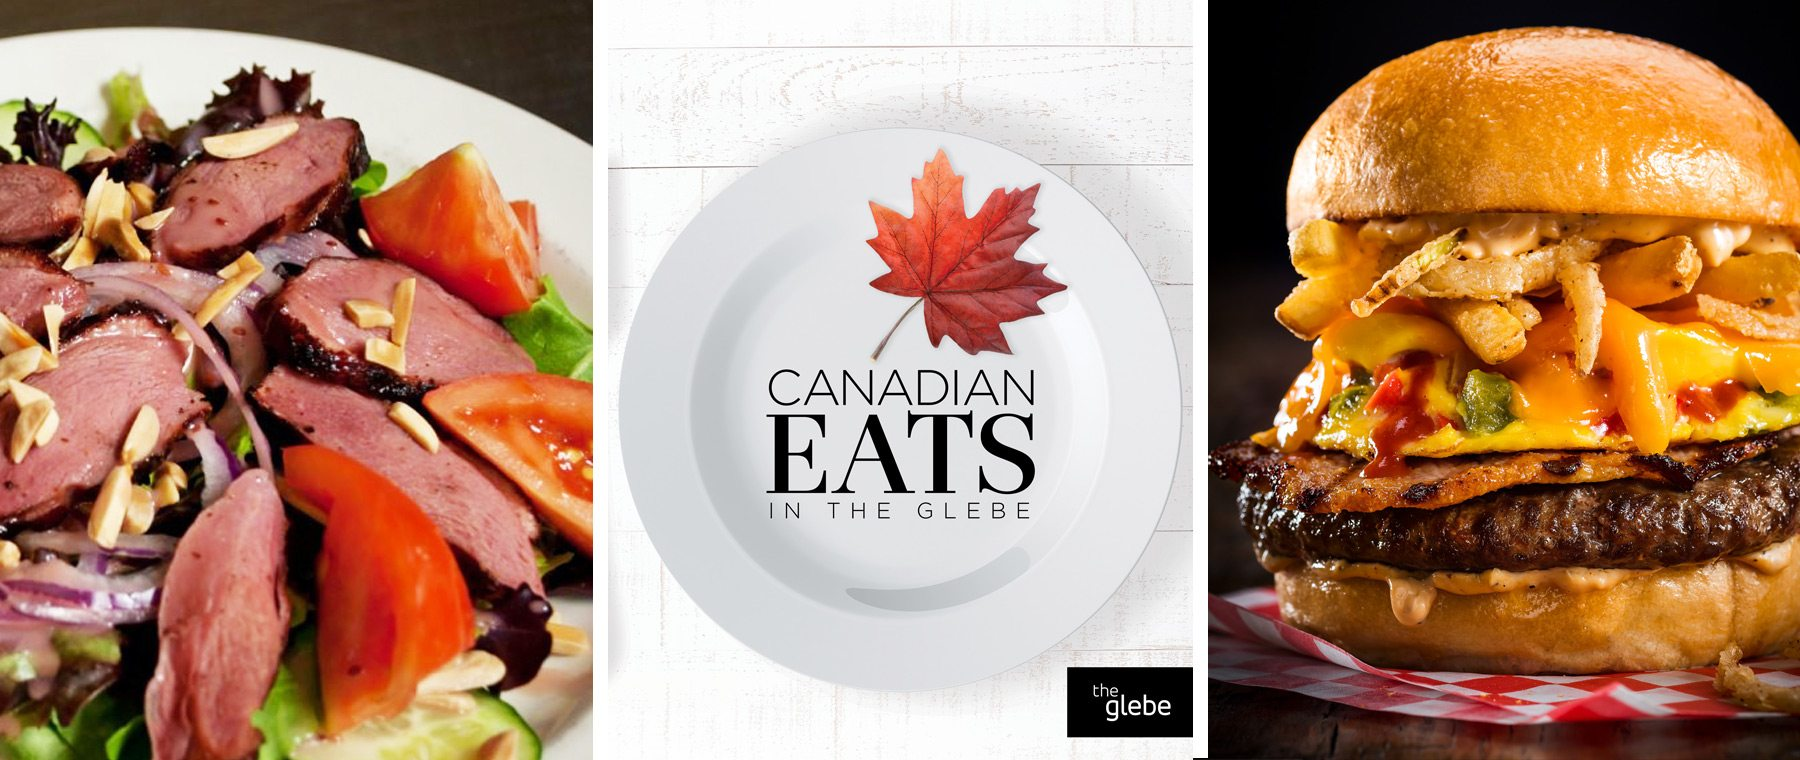 Canadian Eats — 40+ Glebe restos create special menu to capture spirit of Canadian cuisine